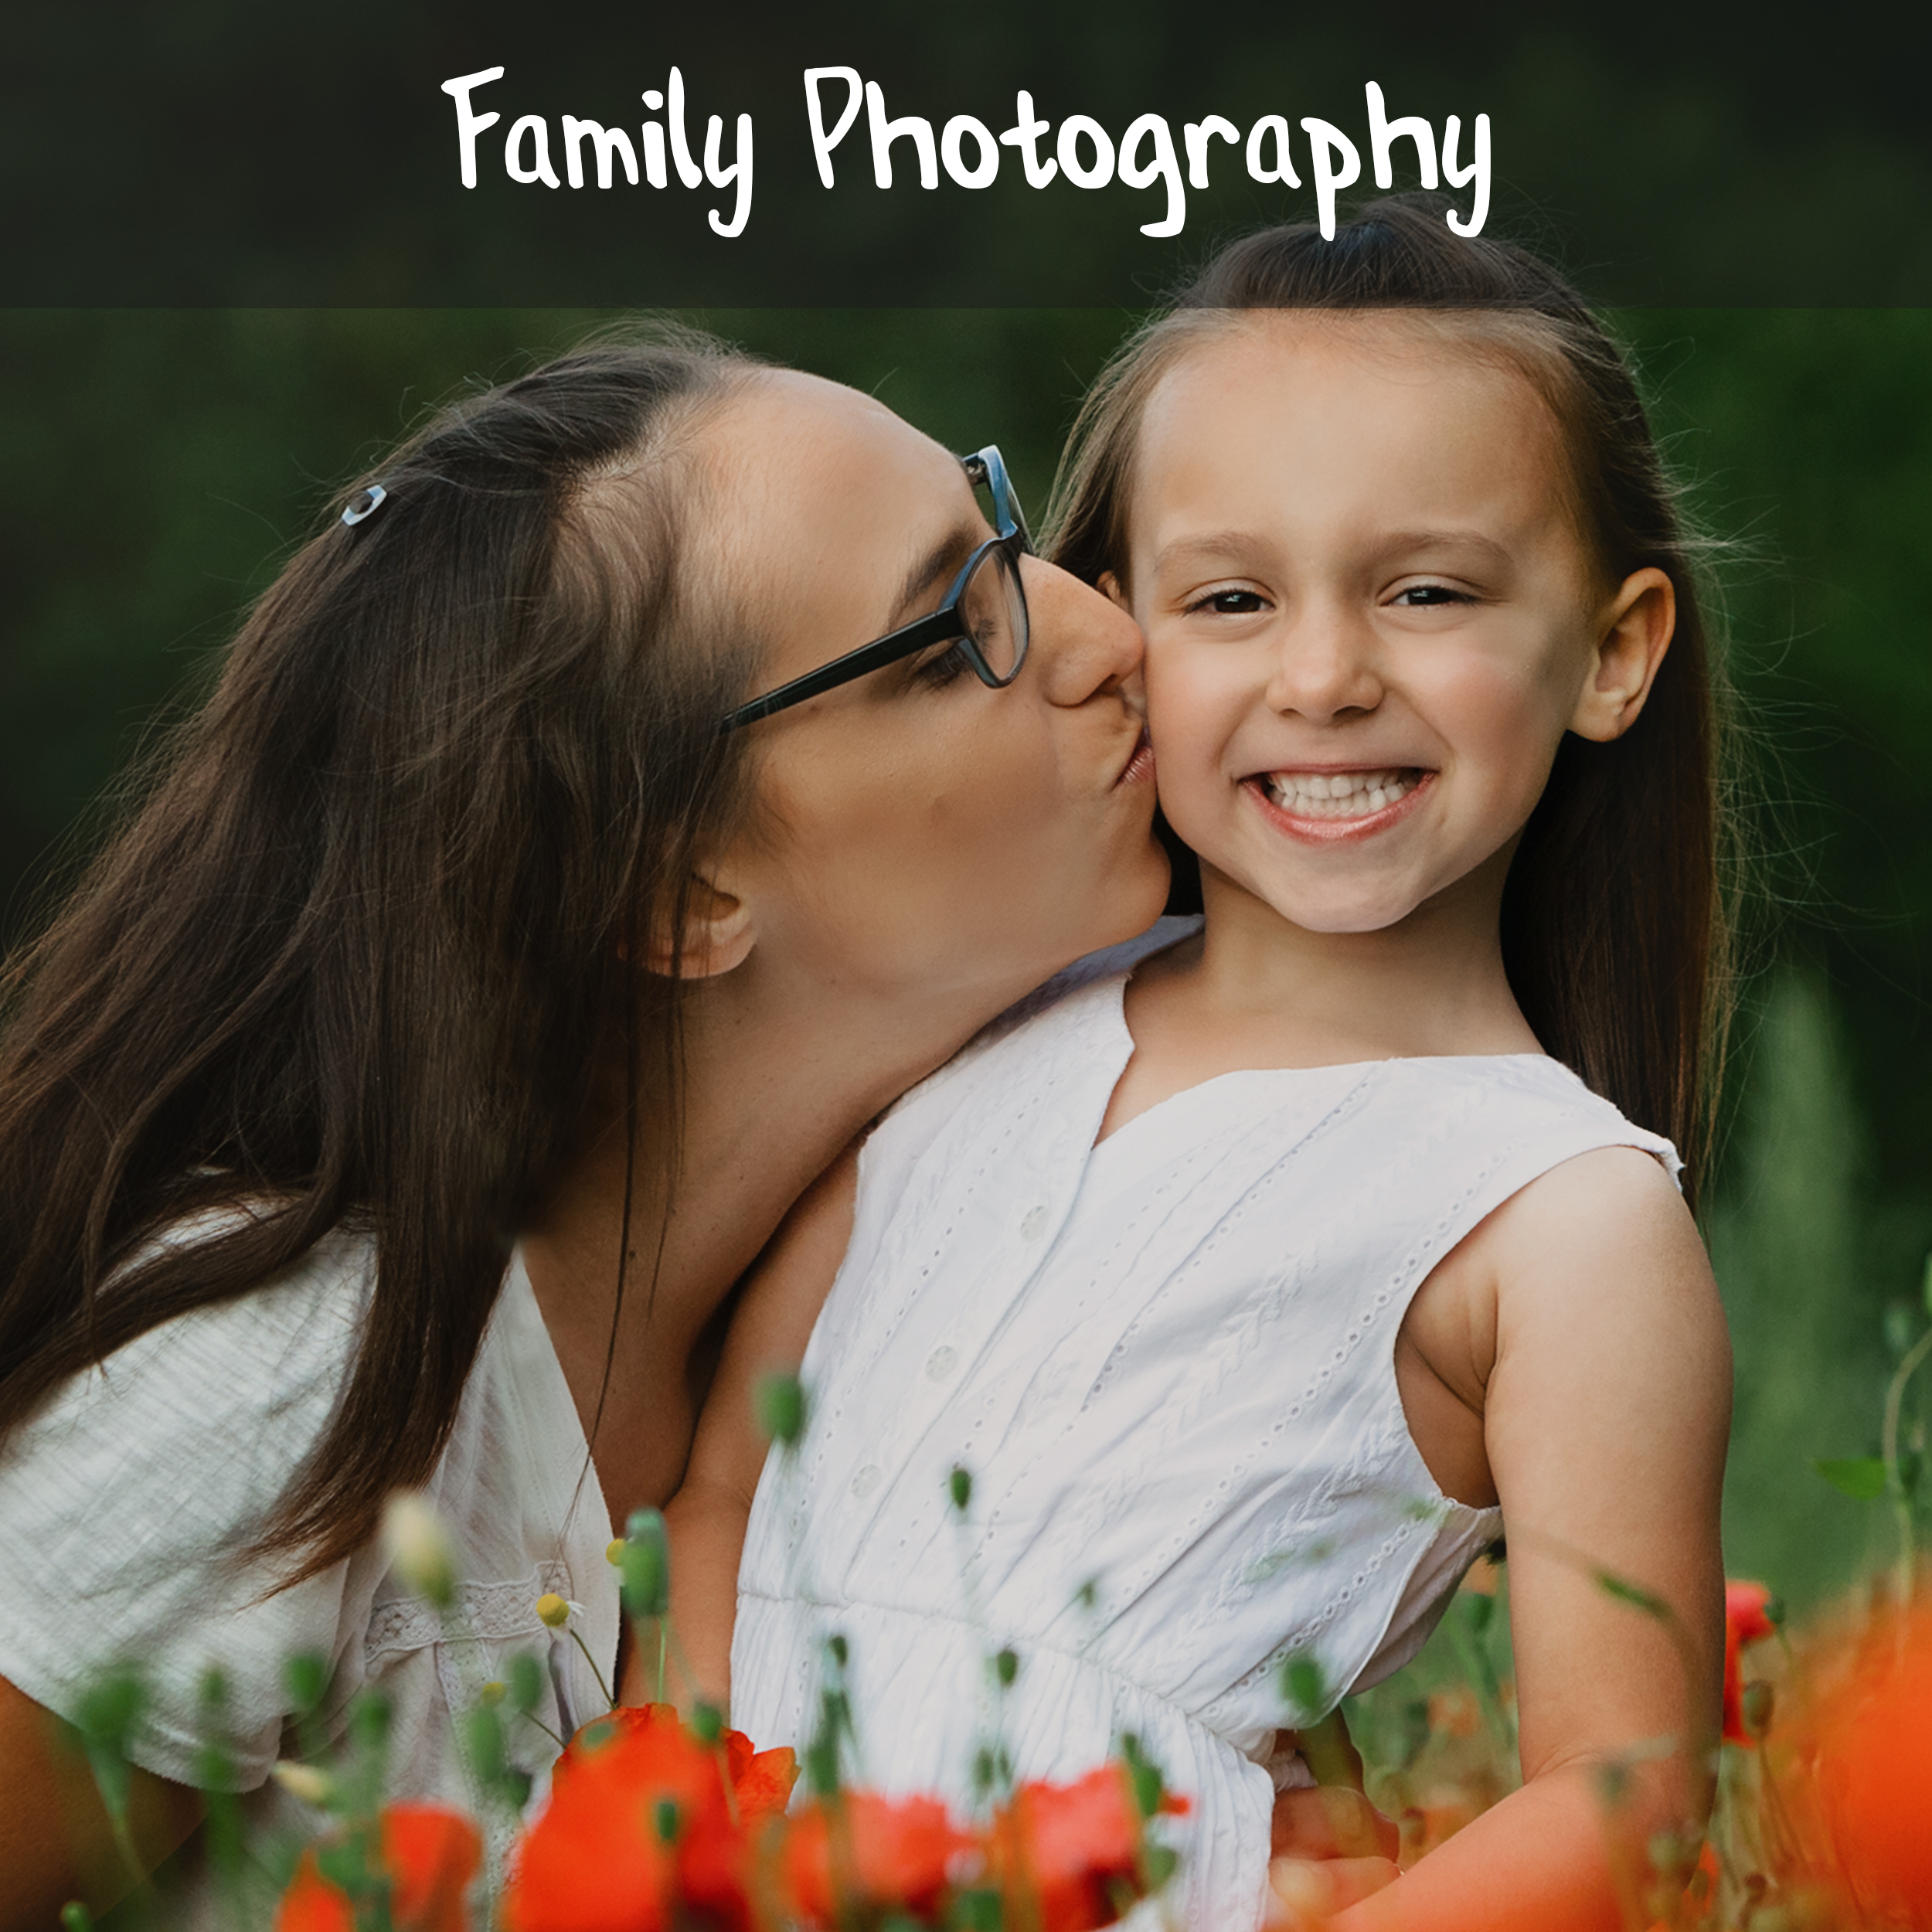 A mother kisses her young daughter on the cheek in a poppy field near Shepshed, Loughborough, Leicestershire